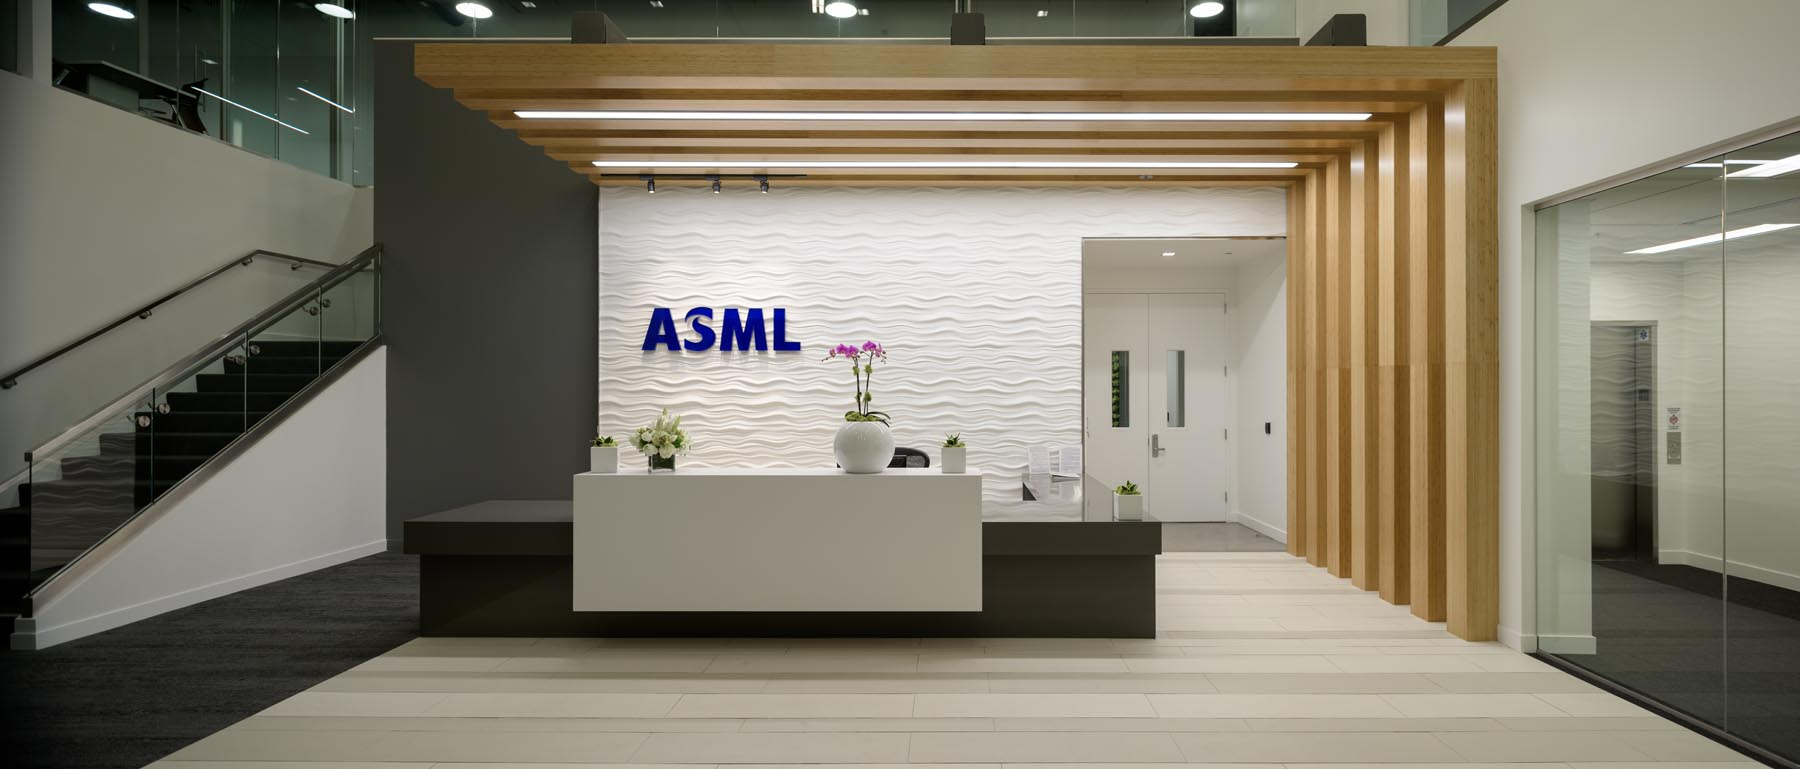 San Jose Interior Architecture Photography   ASML ...